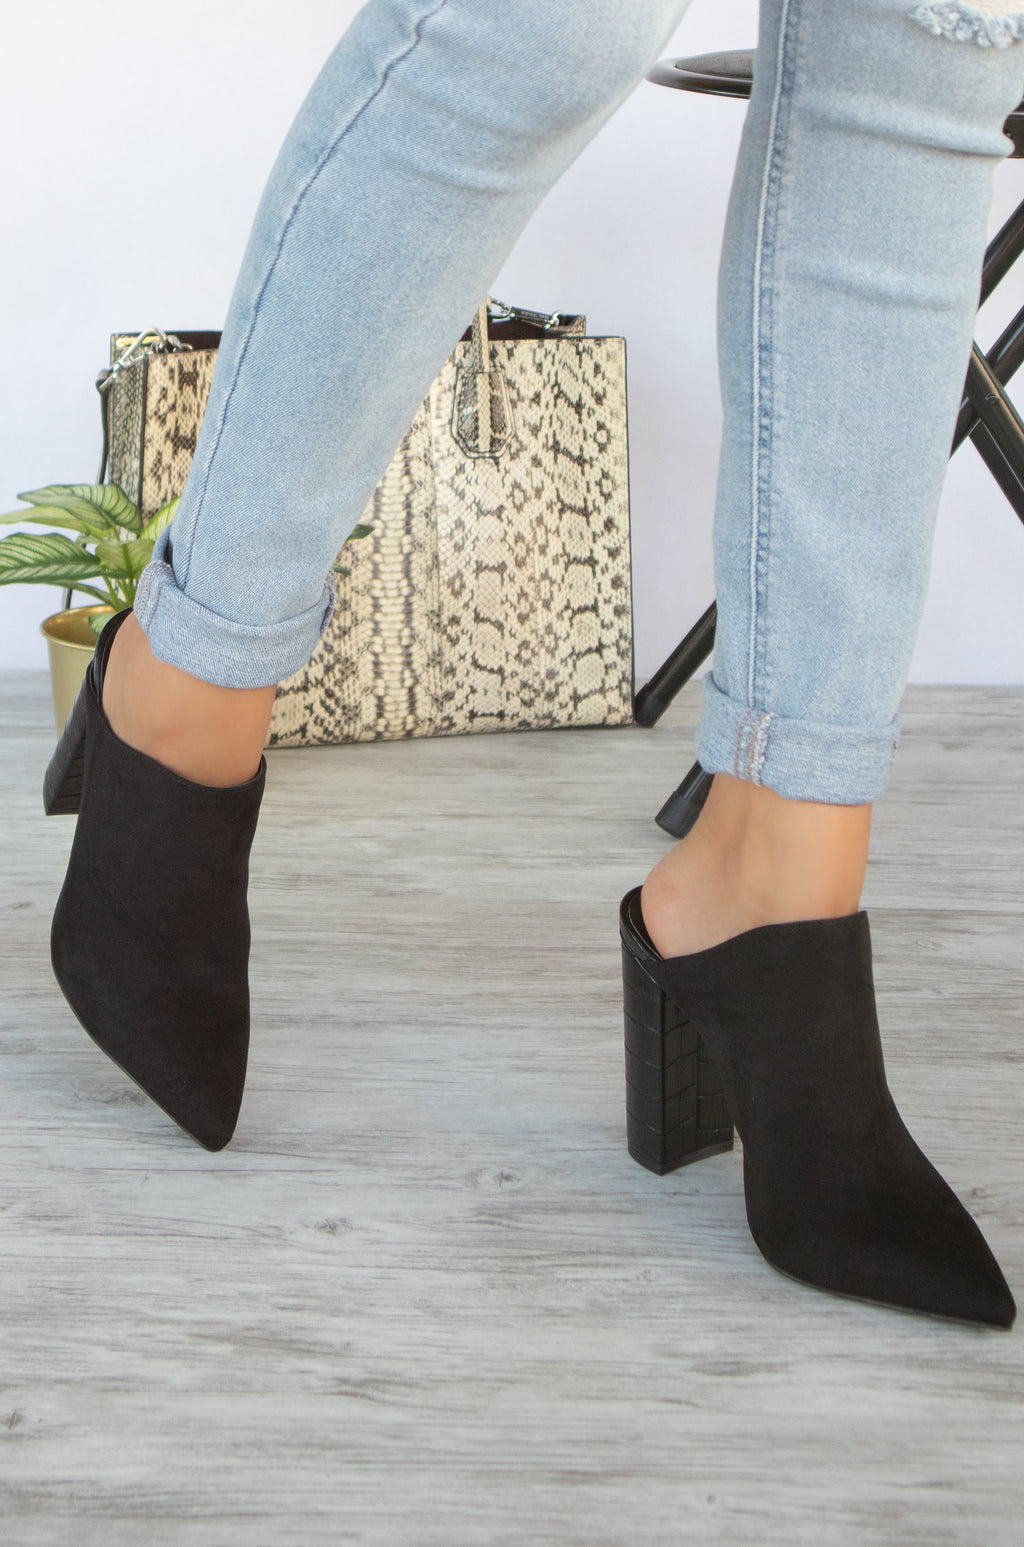 Miss Independent - Black Mule Heels